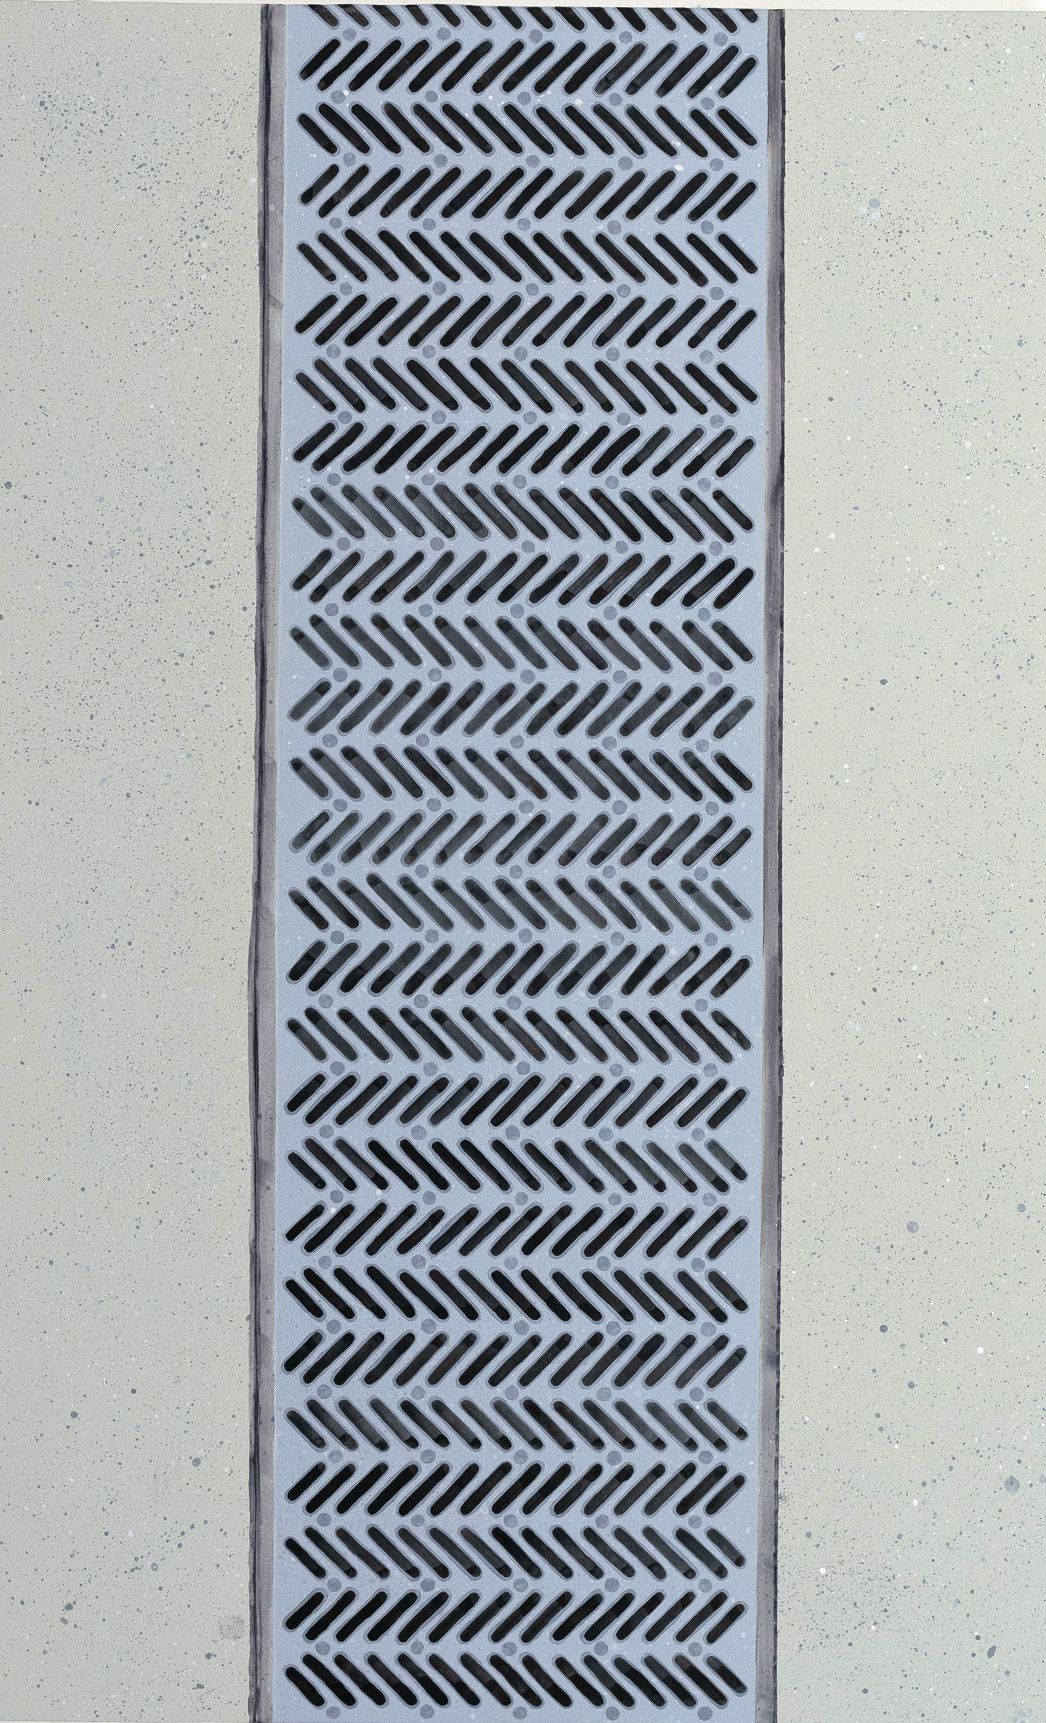 Hannah Cole  Miami Grate (Circle Meditation), 2017  Acrylic on canvas  37h x 23w in 93.98h x 58.42w cm  HC_029 Photorealistic painting